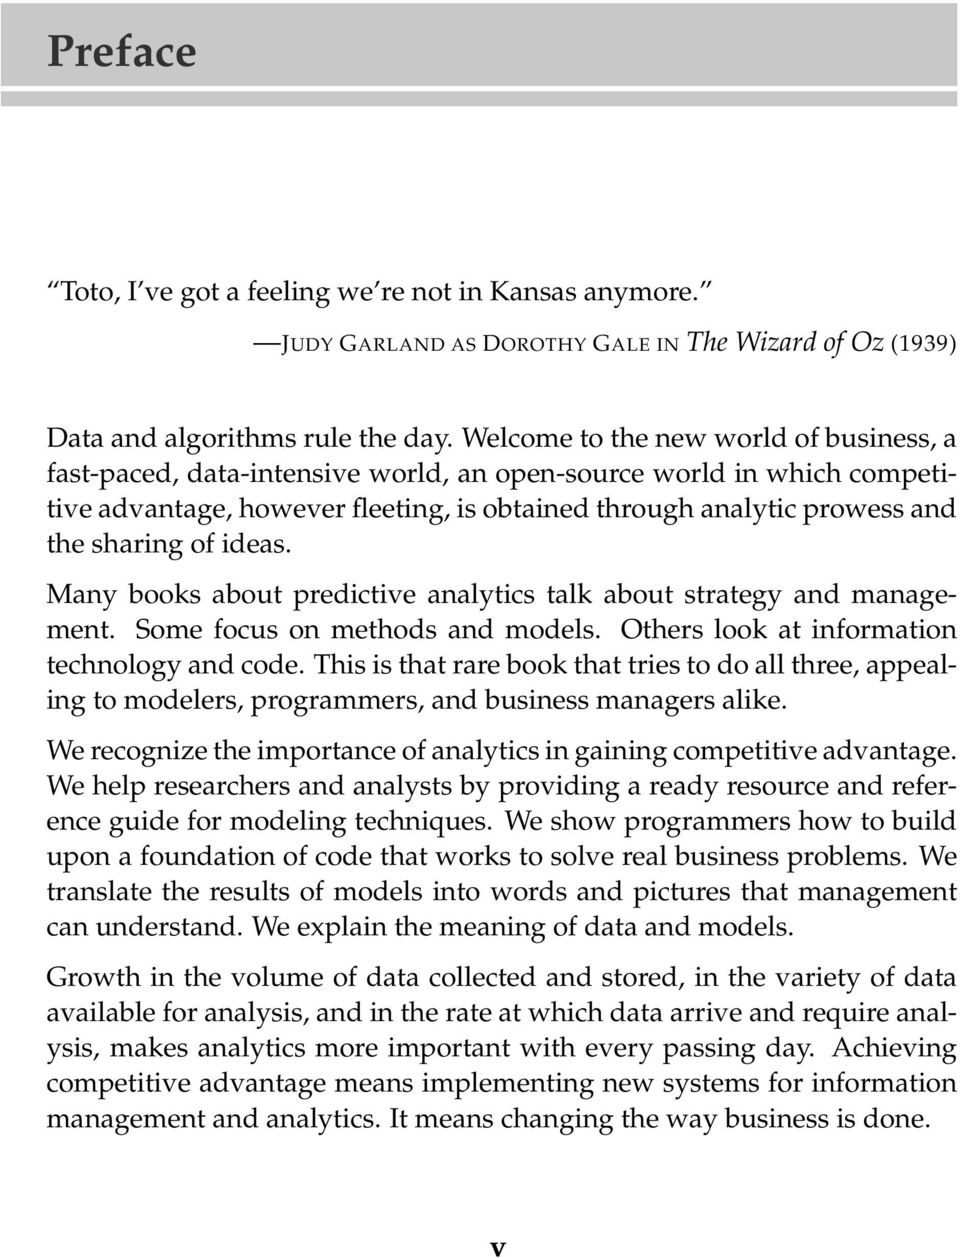 of ideas. Many books about predictive analytics talk about strategy and management. Some focus on methods and models. Others look at information technology and code.